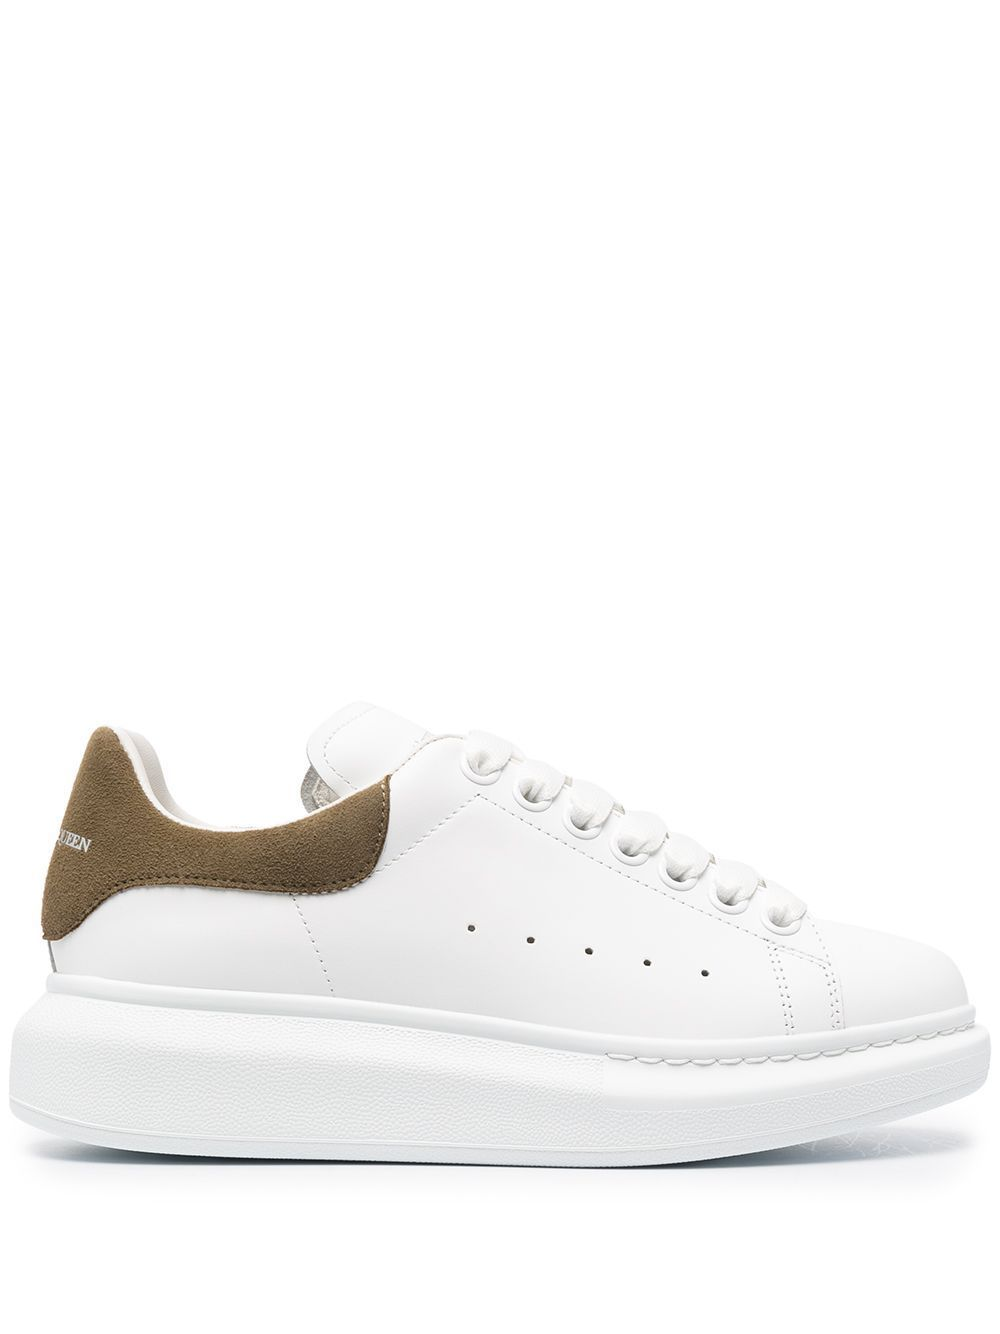 Alexander Mcqueen ALEXANDER MCQUEEN WOMEN'S WHITE LEATHER SNEAKERS